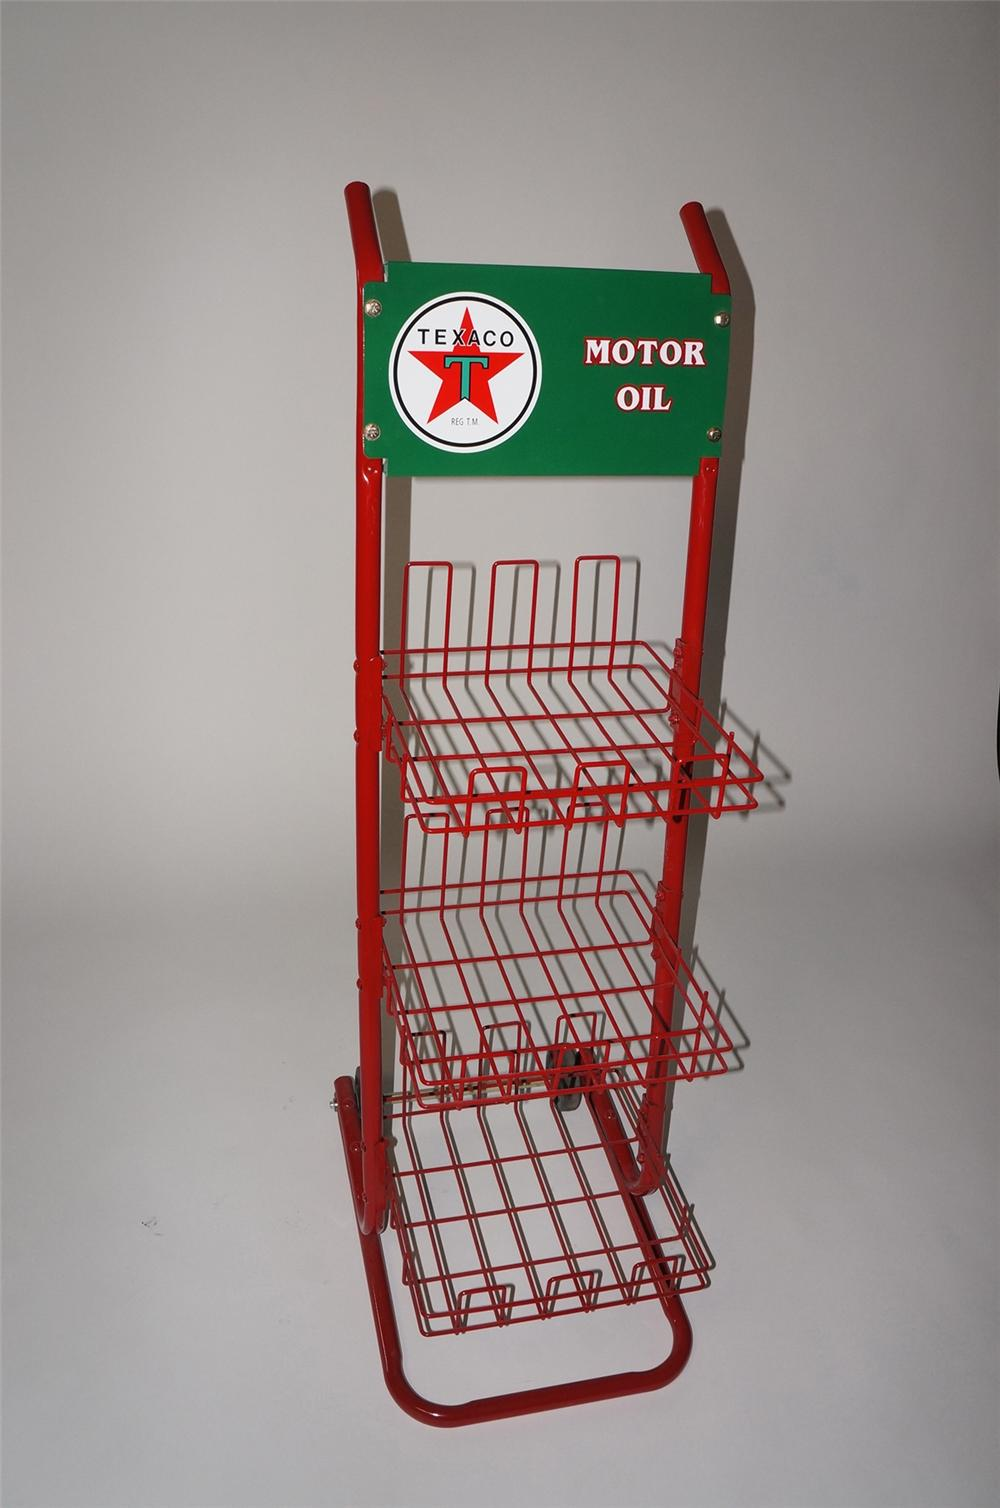 Fabulous 1950s restored  Texaco Oil service station fuel island display cart for oil/batteries, and more. - Front 3/4 - 130715